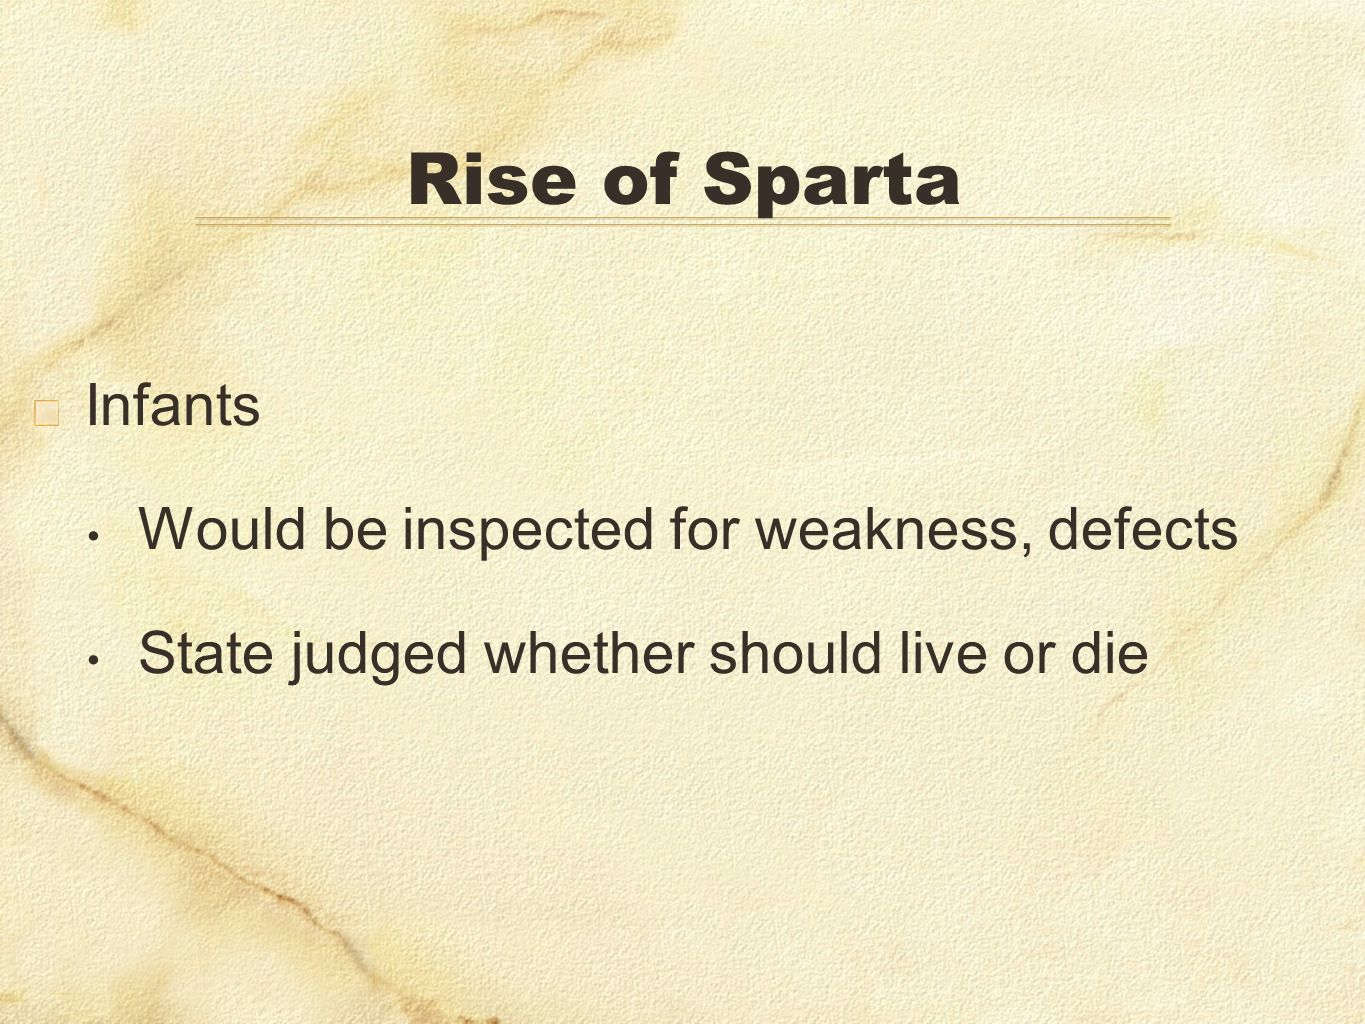 Rise of Sparta Infants Would be inspected for weakness, defects State judged whether should live or die